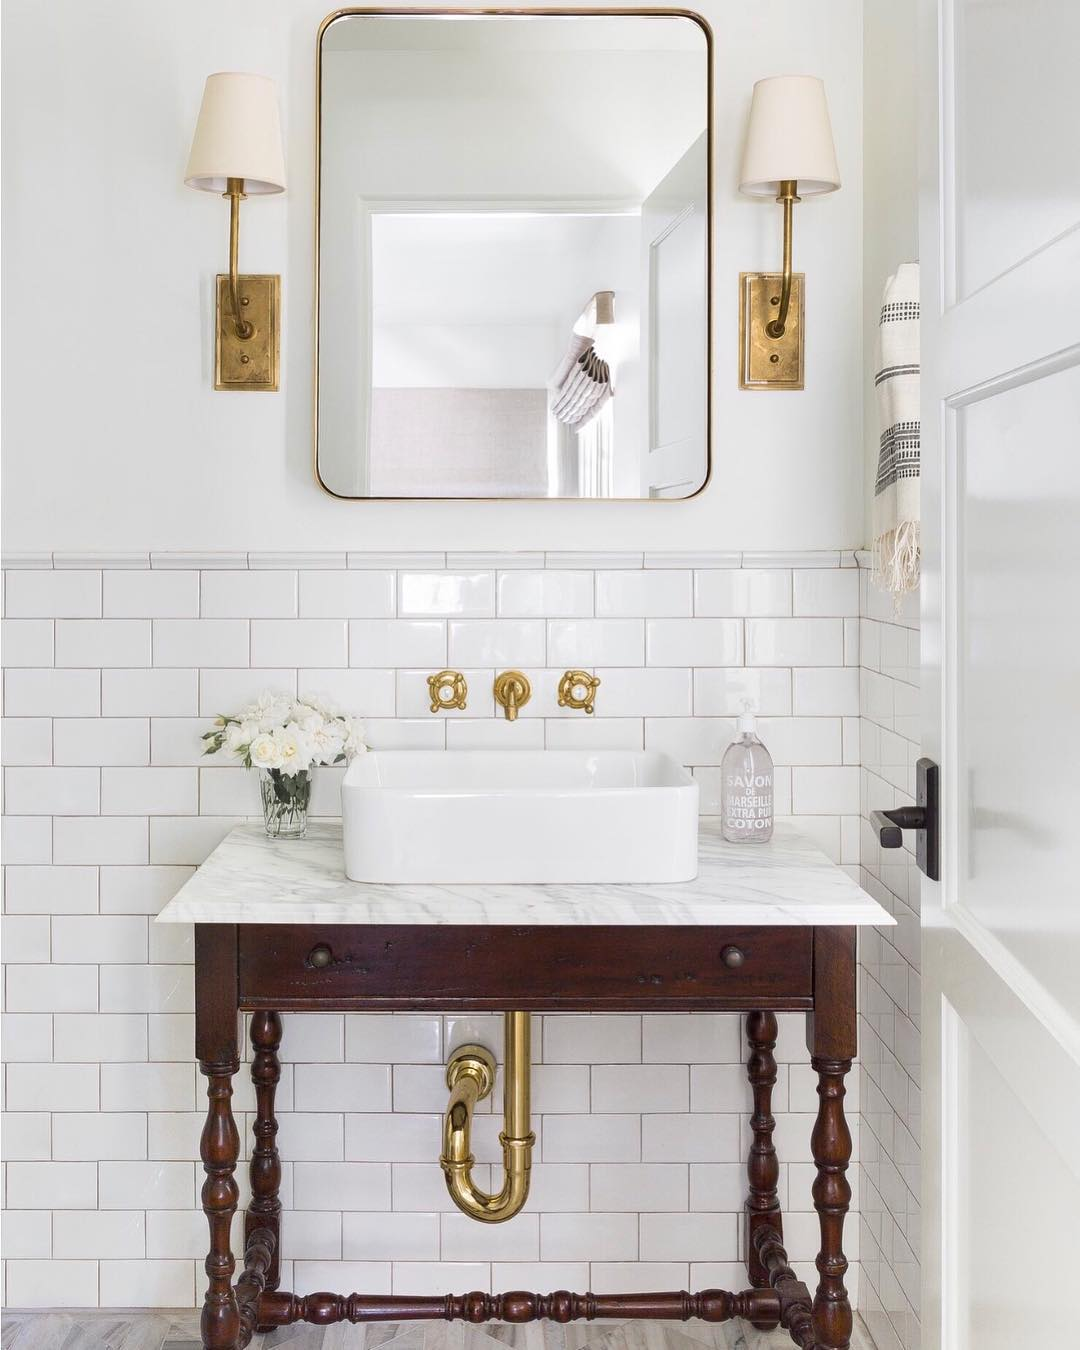 Bathroom with subway tile, vessel sink and brass hardware